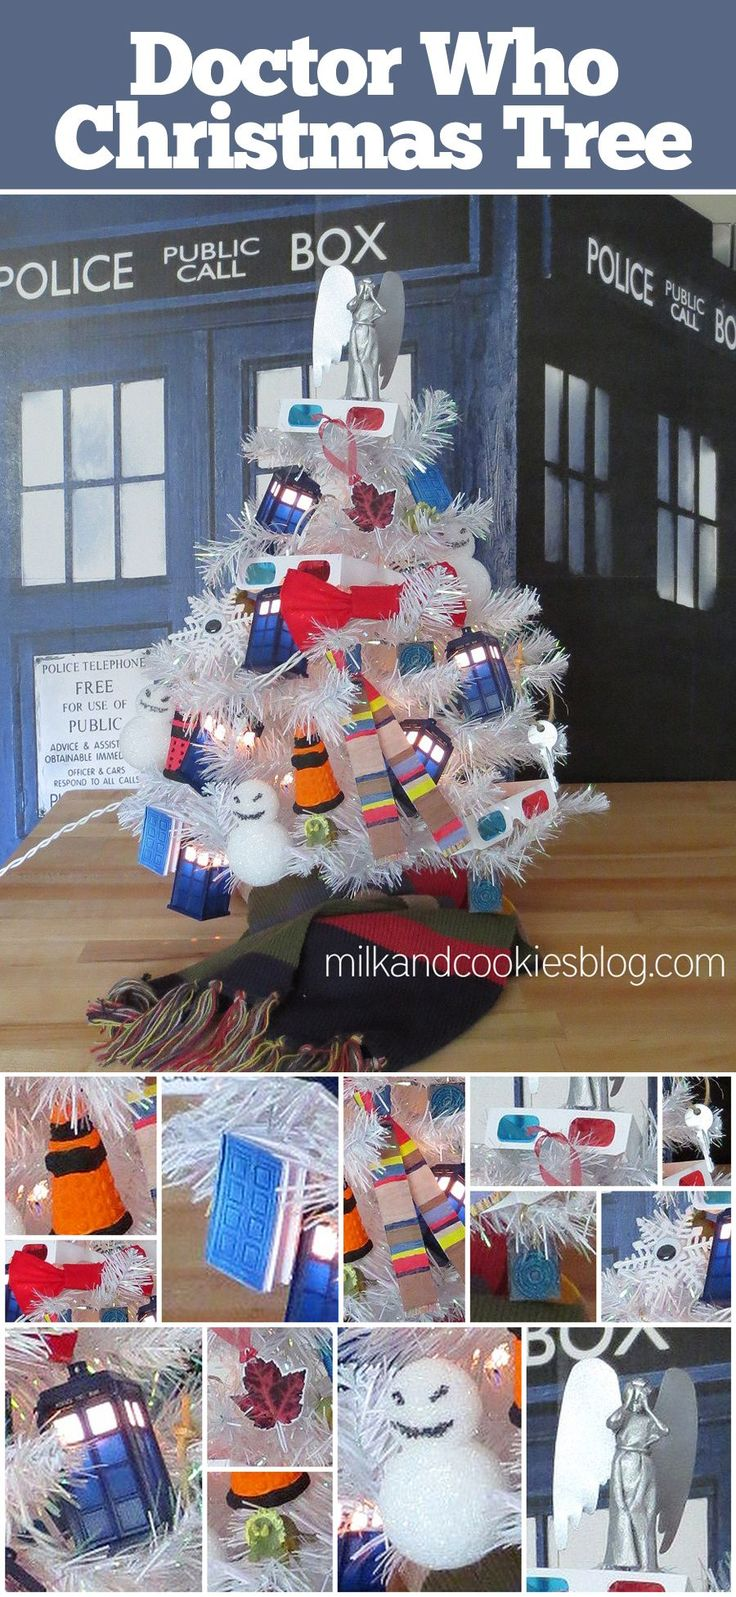 Doctor Who Christmas tree. Loads of DIY ornaments!